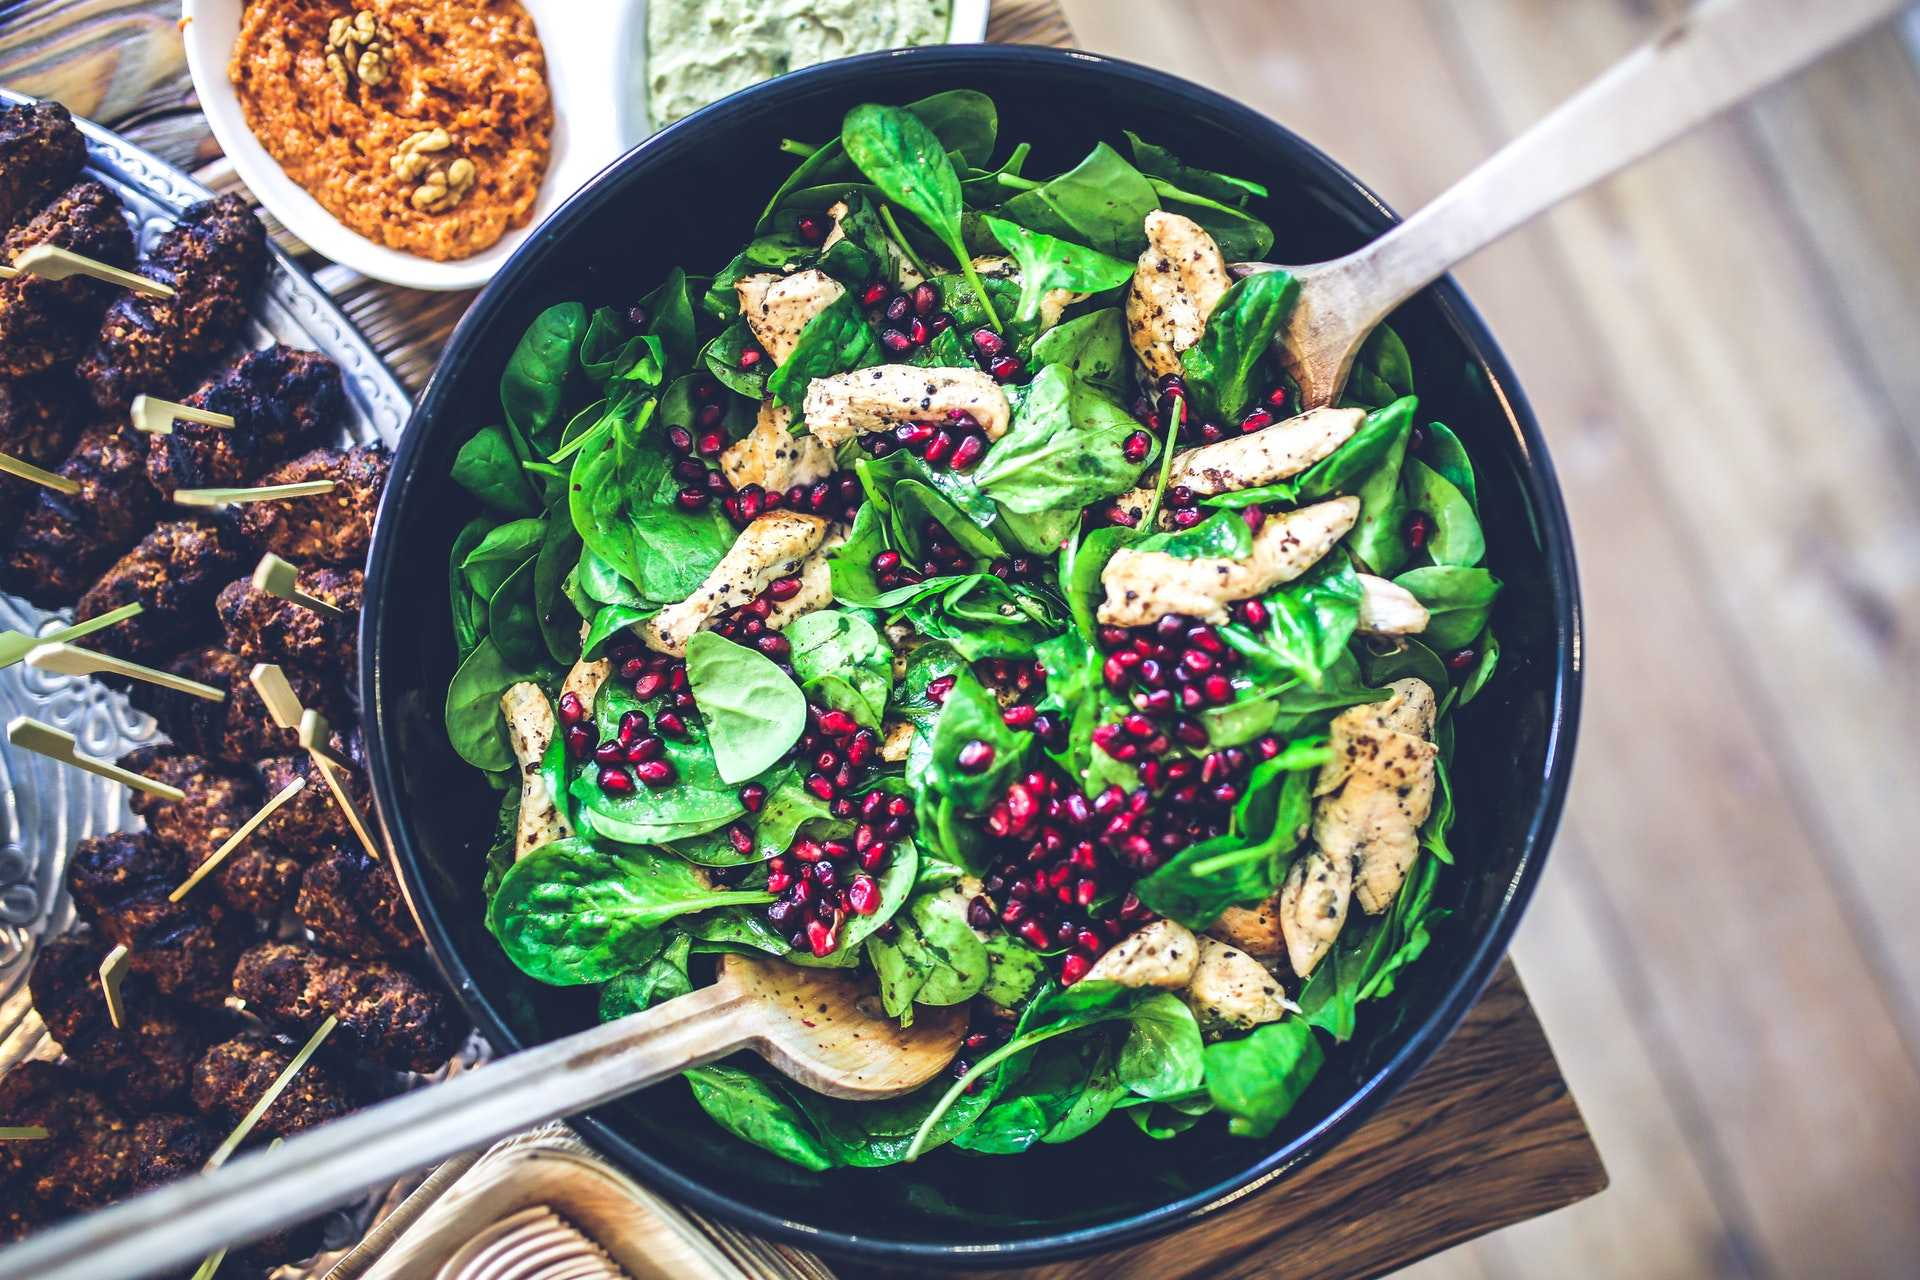 What to Eat to Lower BMI